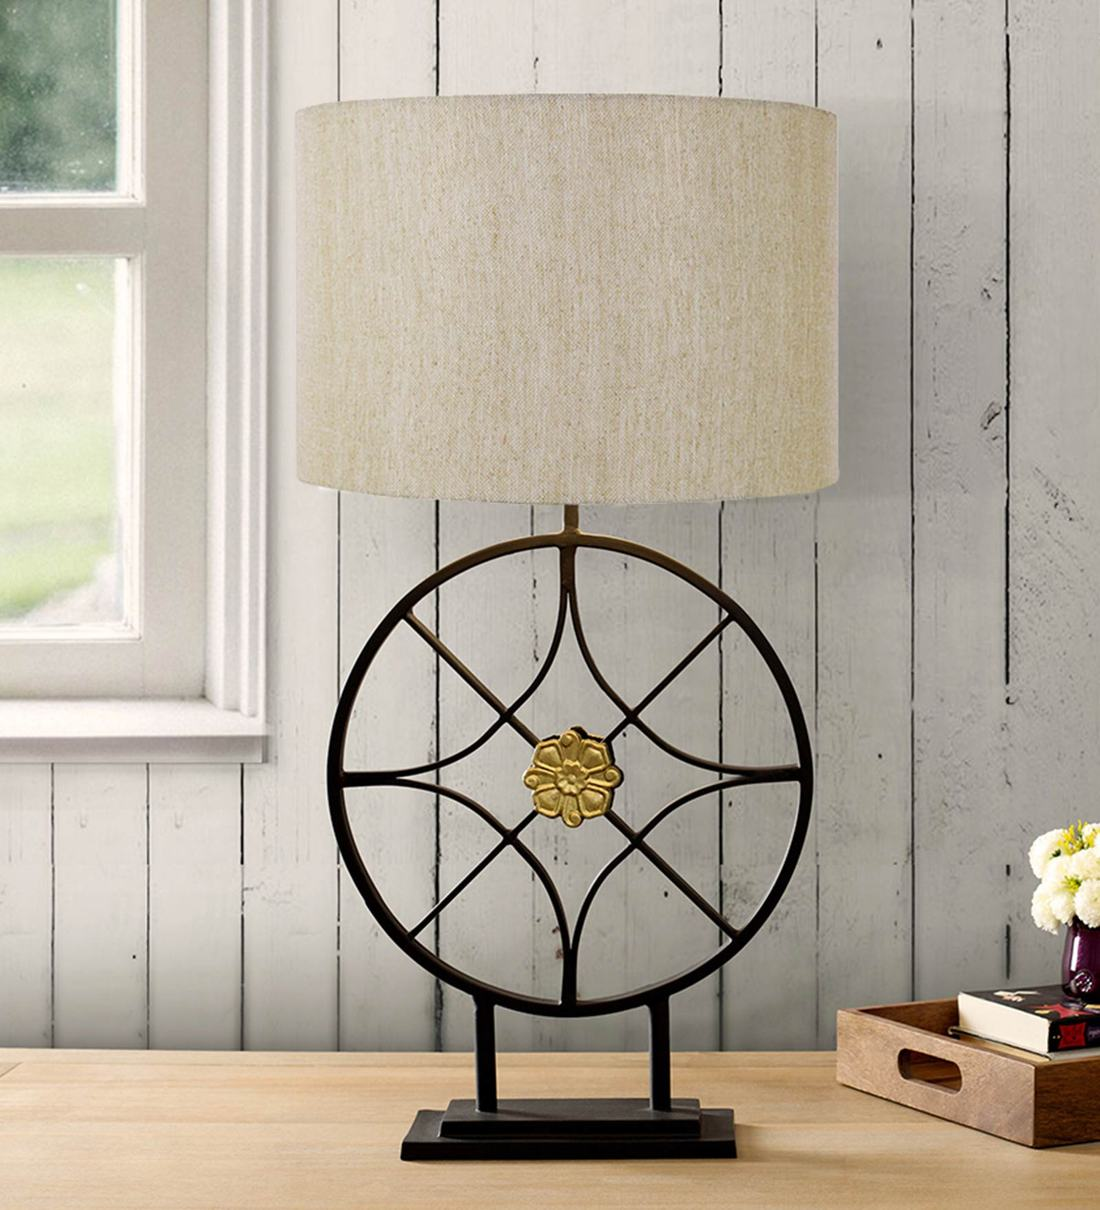 Buy Aureole Sephia Metal Fabric Shade Table Lamp With Rustic Brown Base By Clg Retail Online Modern And Contemporary Table Lamps Table Lamps Lamps Lighting Pepperfry Product